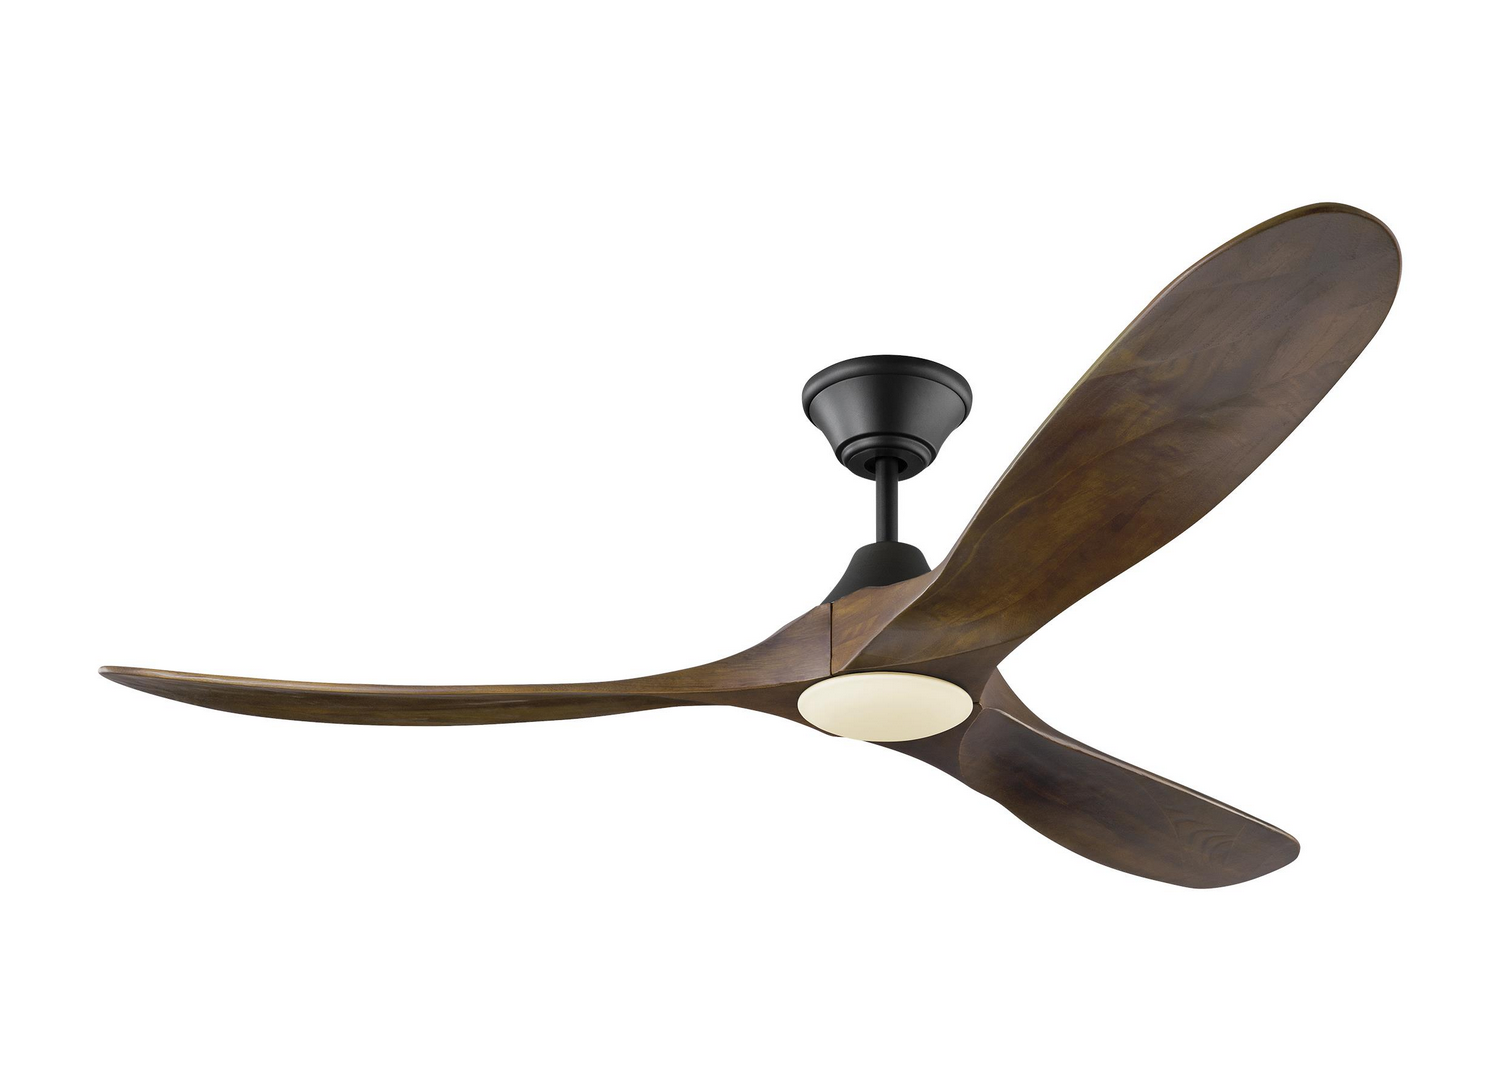 60 inchCeiling Fan from the Maverick LED collection by Monte Carlo 3MAVR60BKD